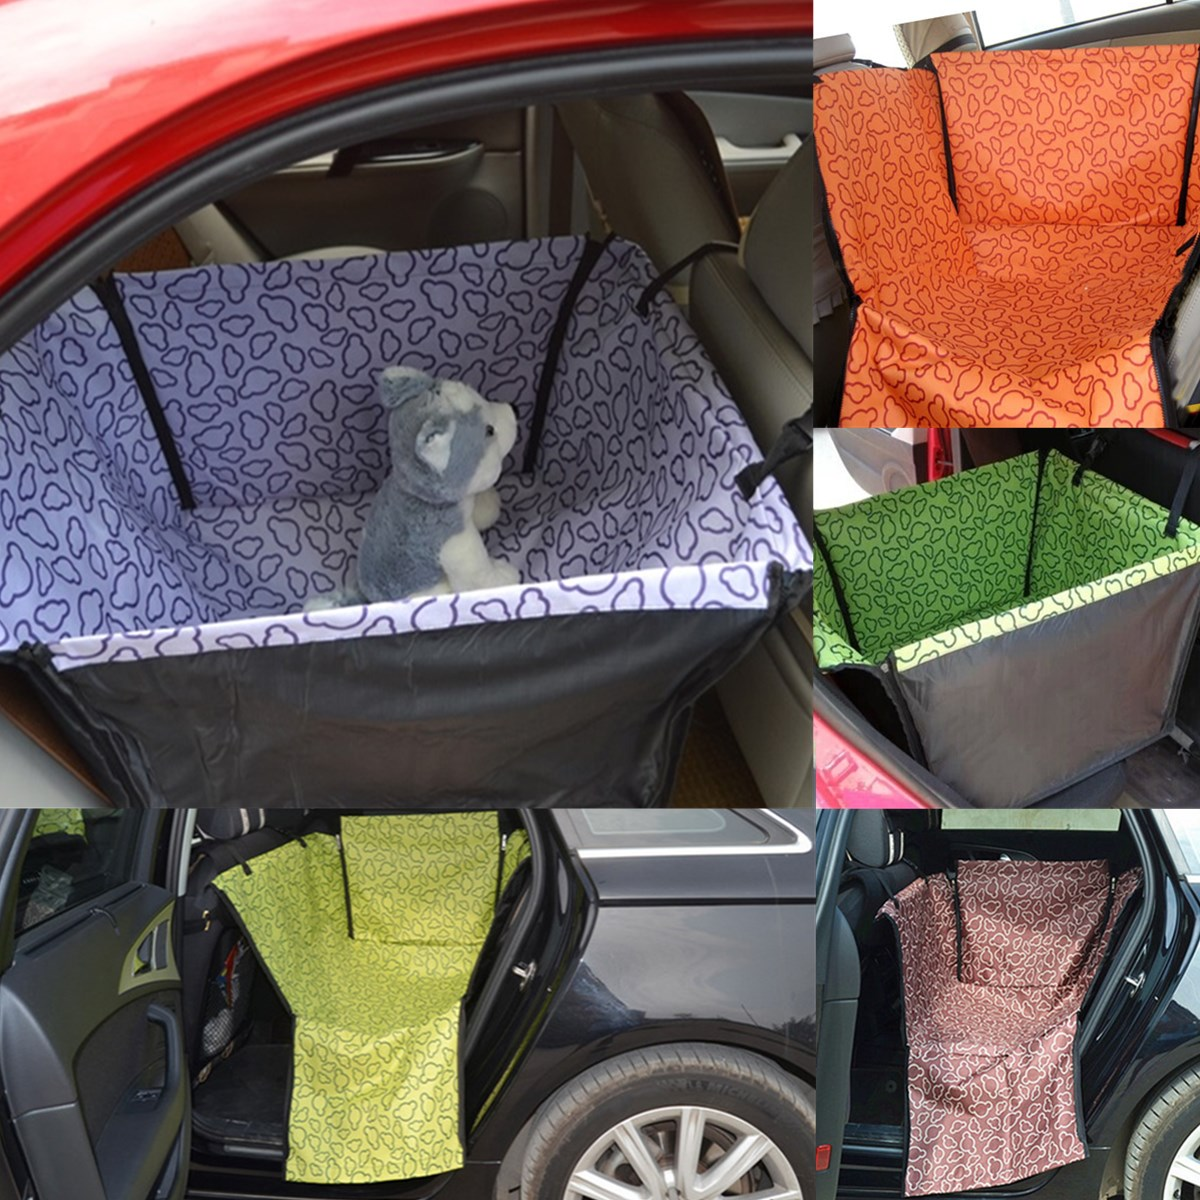 Pet Dog Cat Car Rear Back Seat Hammock Blanket Bed Safe Comfortable Waterproof Washable Crates Kennels